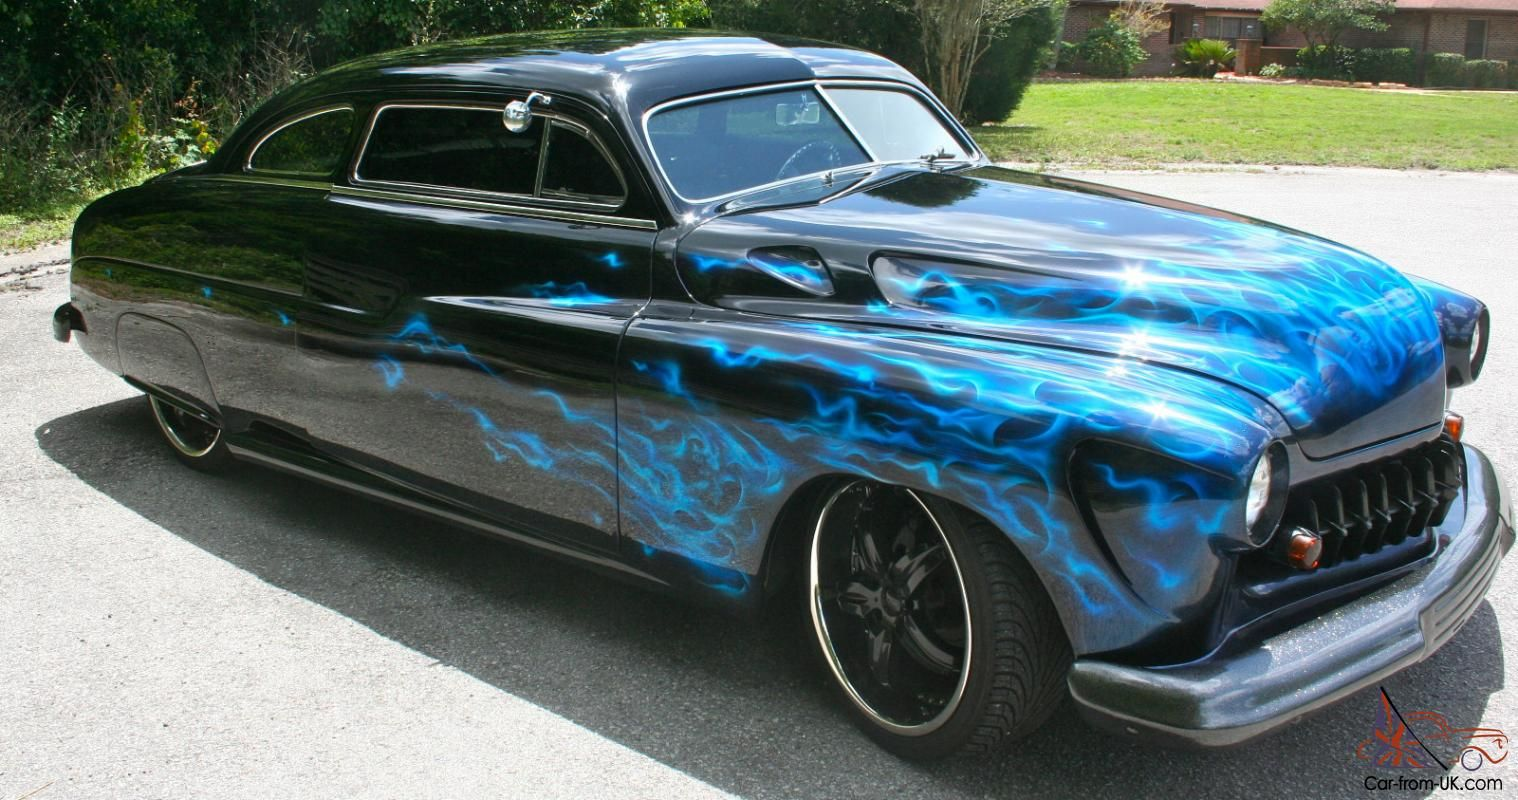 Flamed | rat rod,muscle & classic cars | Pinterest | Cars, Mopar and ...